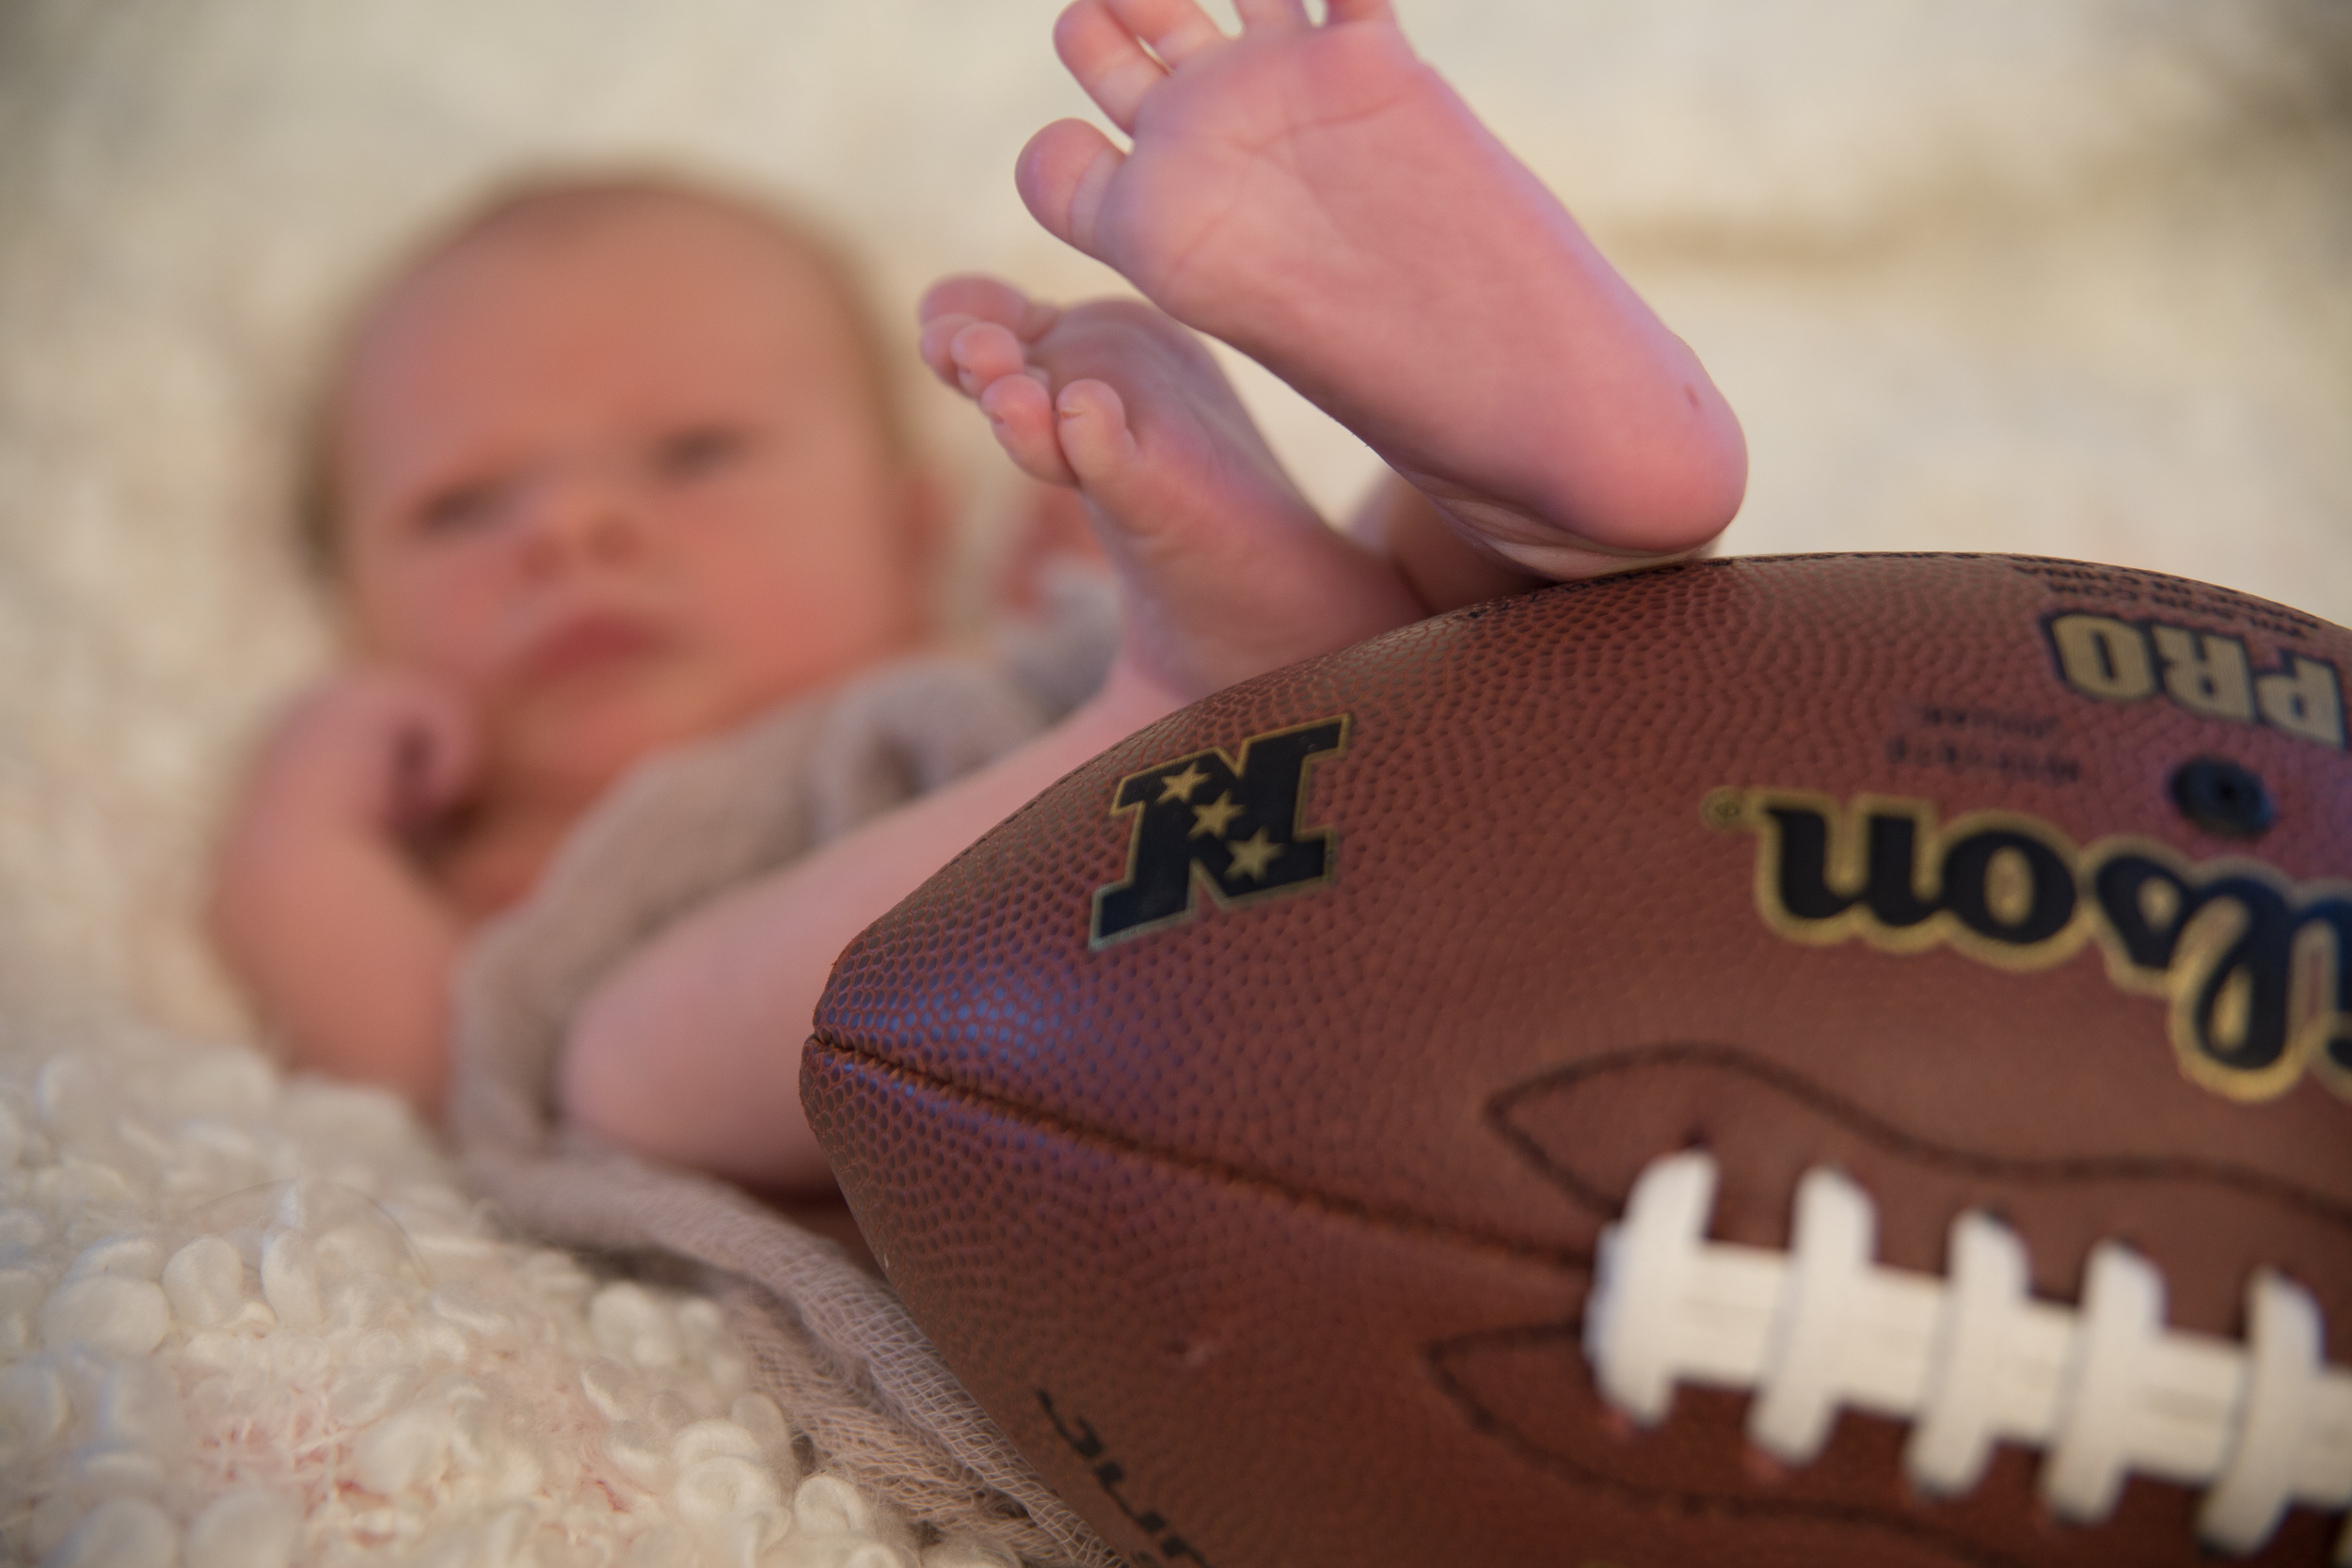 Maybe he'll be a football player like Daddy?